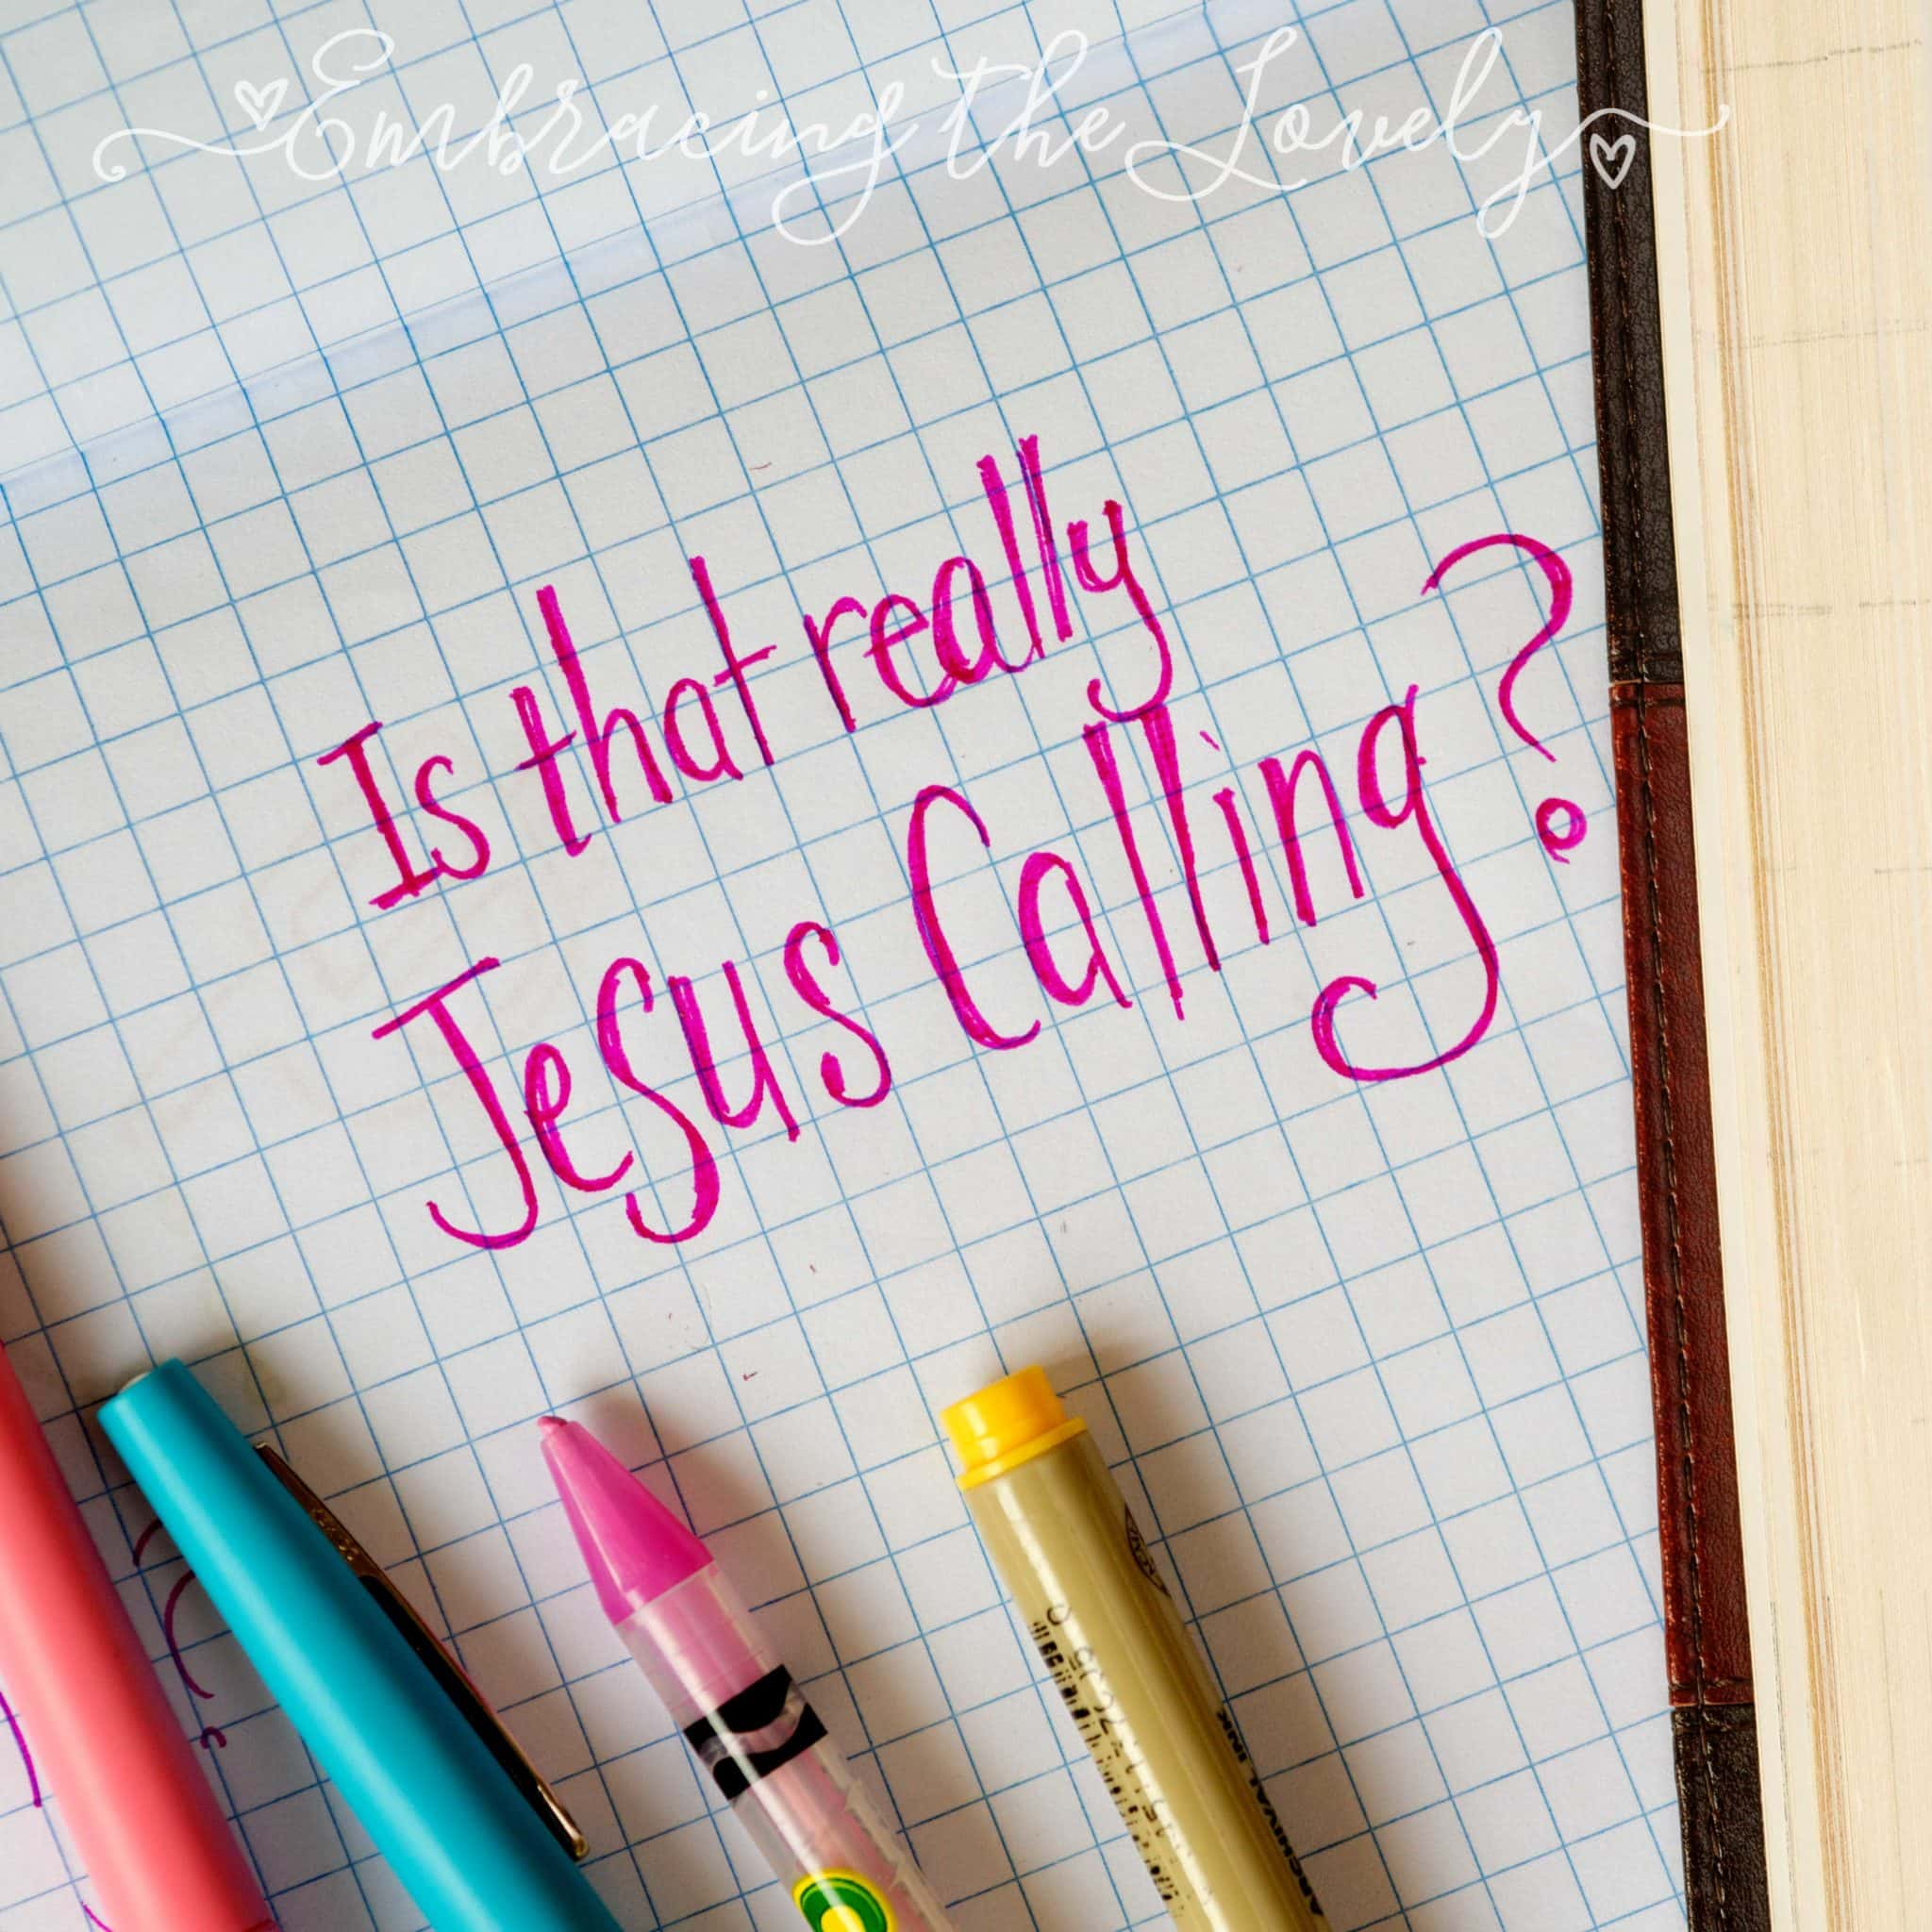 Is Jesus Calling heresy? Find out why I will not finish reading the popular devotional with this Jesus Calling criticism from the view of a women who grew up in a New Age home